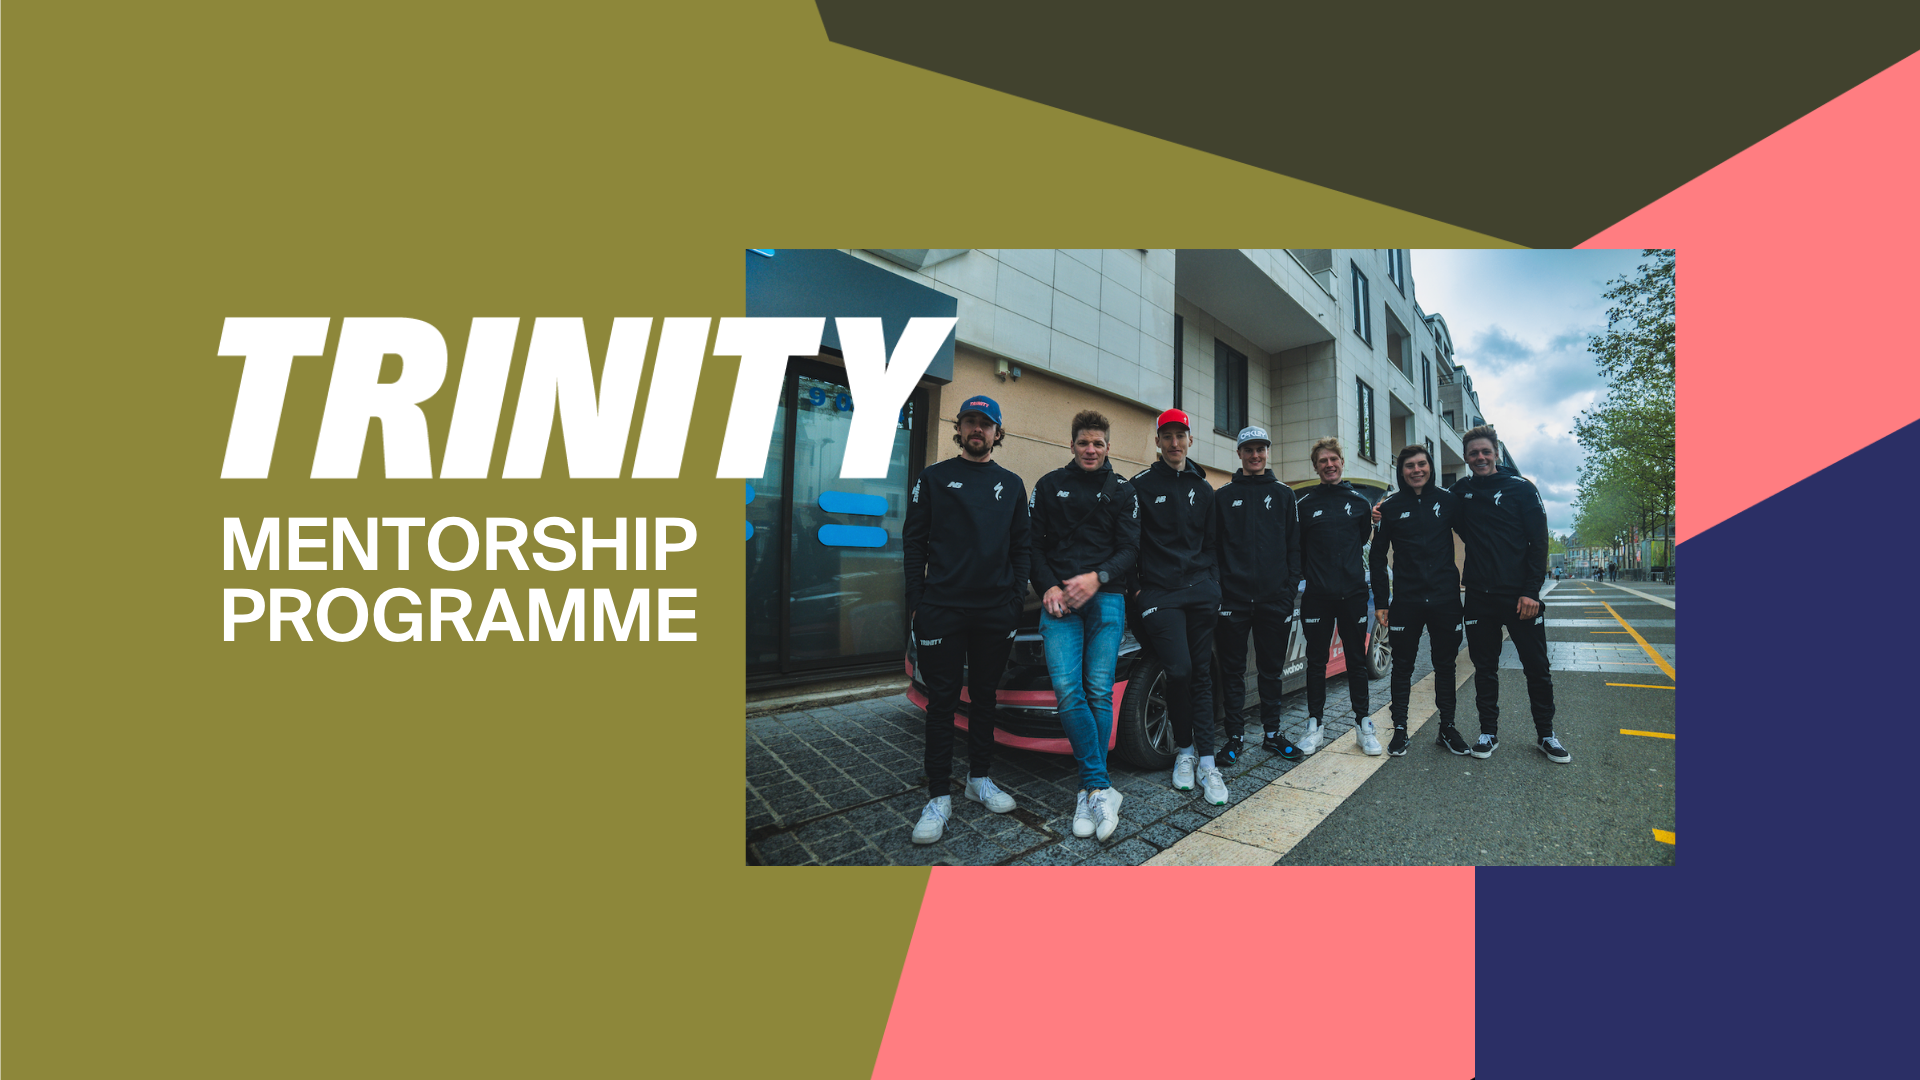 TRINITY Racing Mentorship Programme for Cyclists